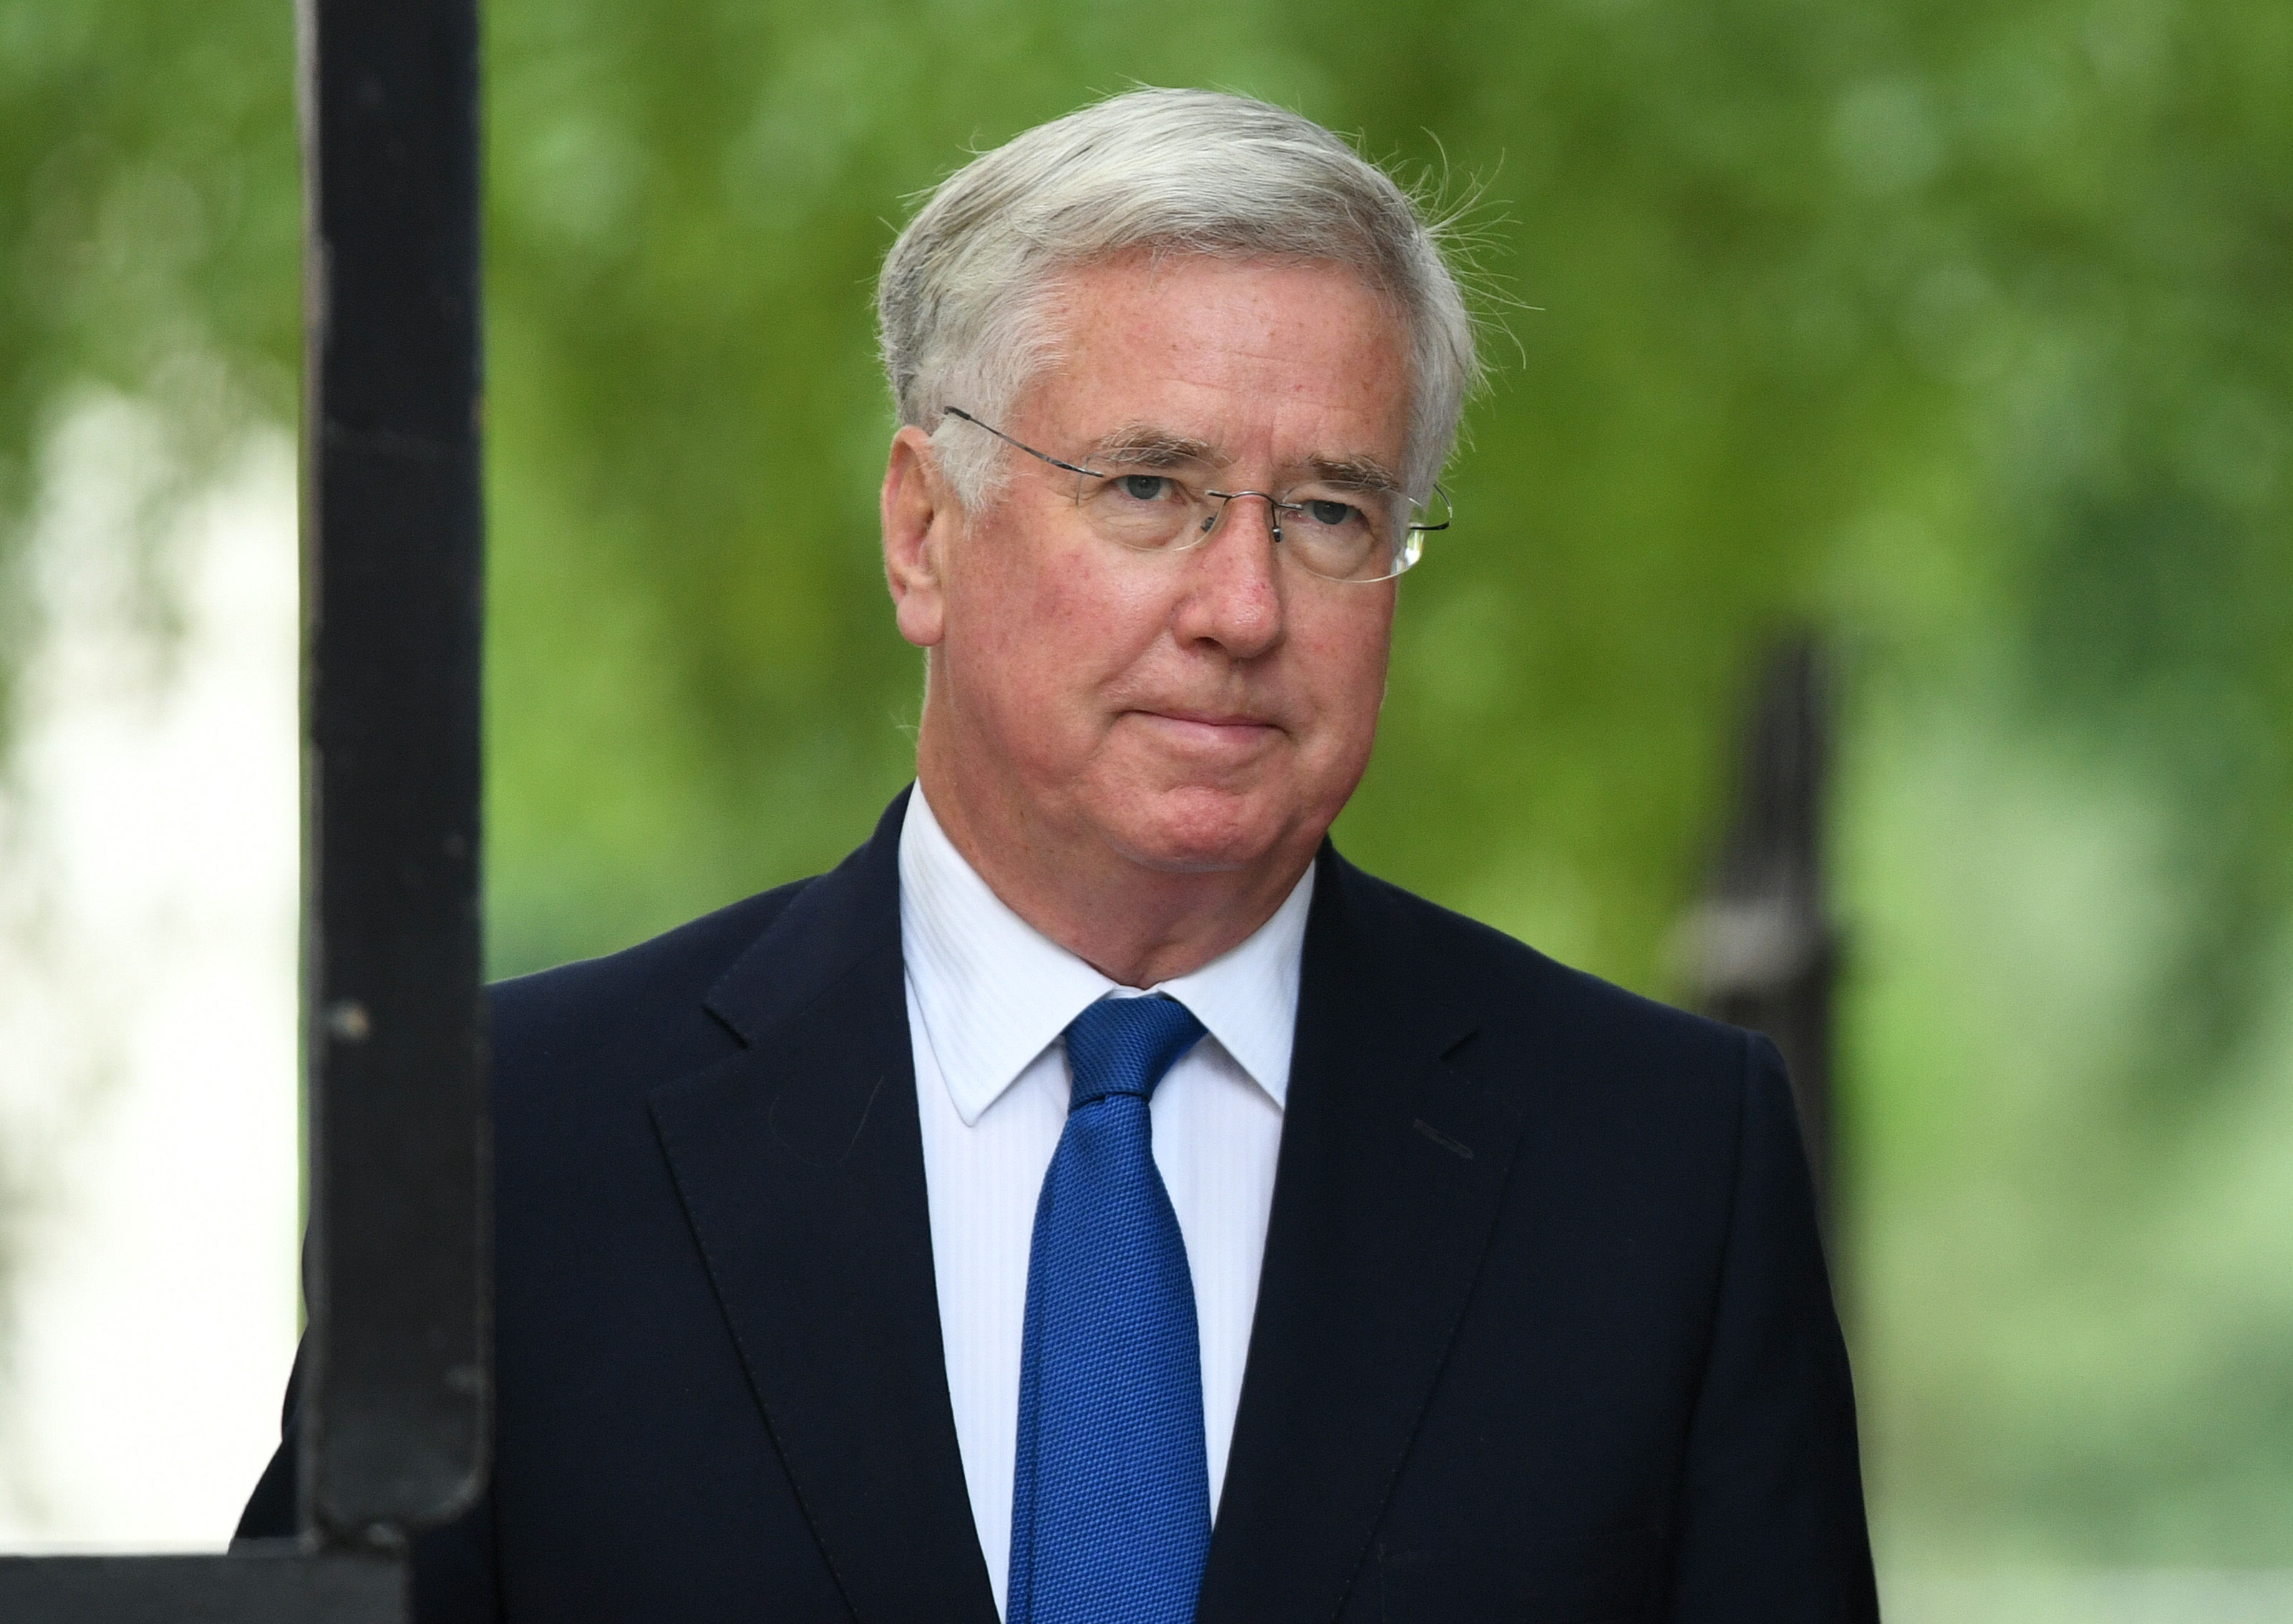 Defence Secretary Sir Michael Fallon arriving for a cabinet meeting